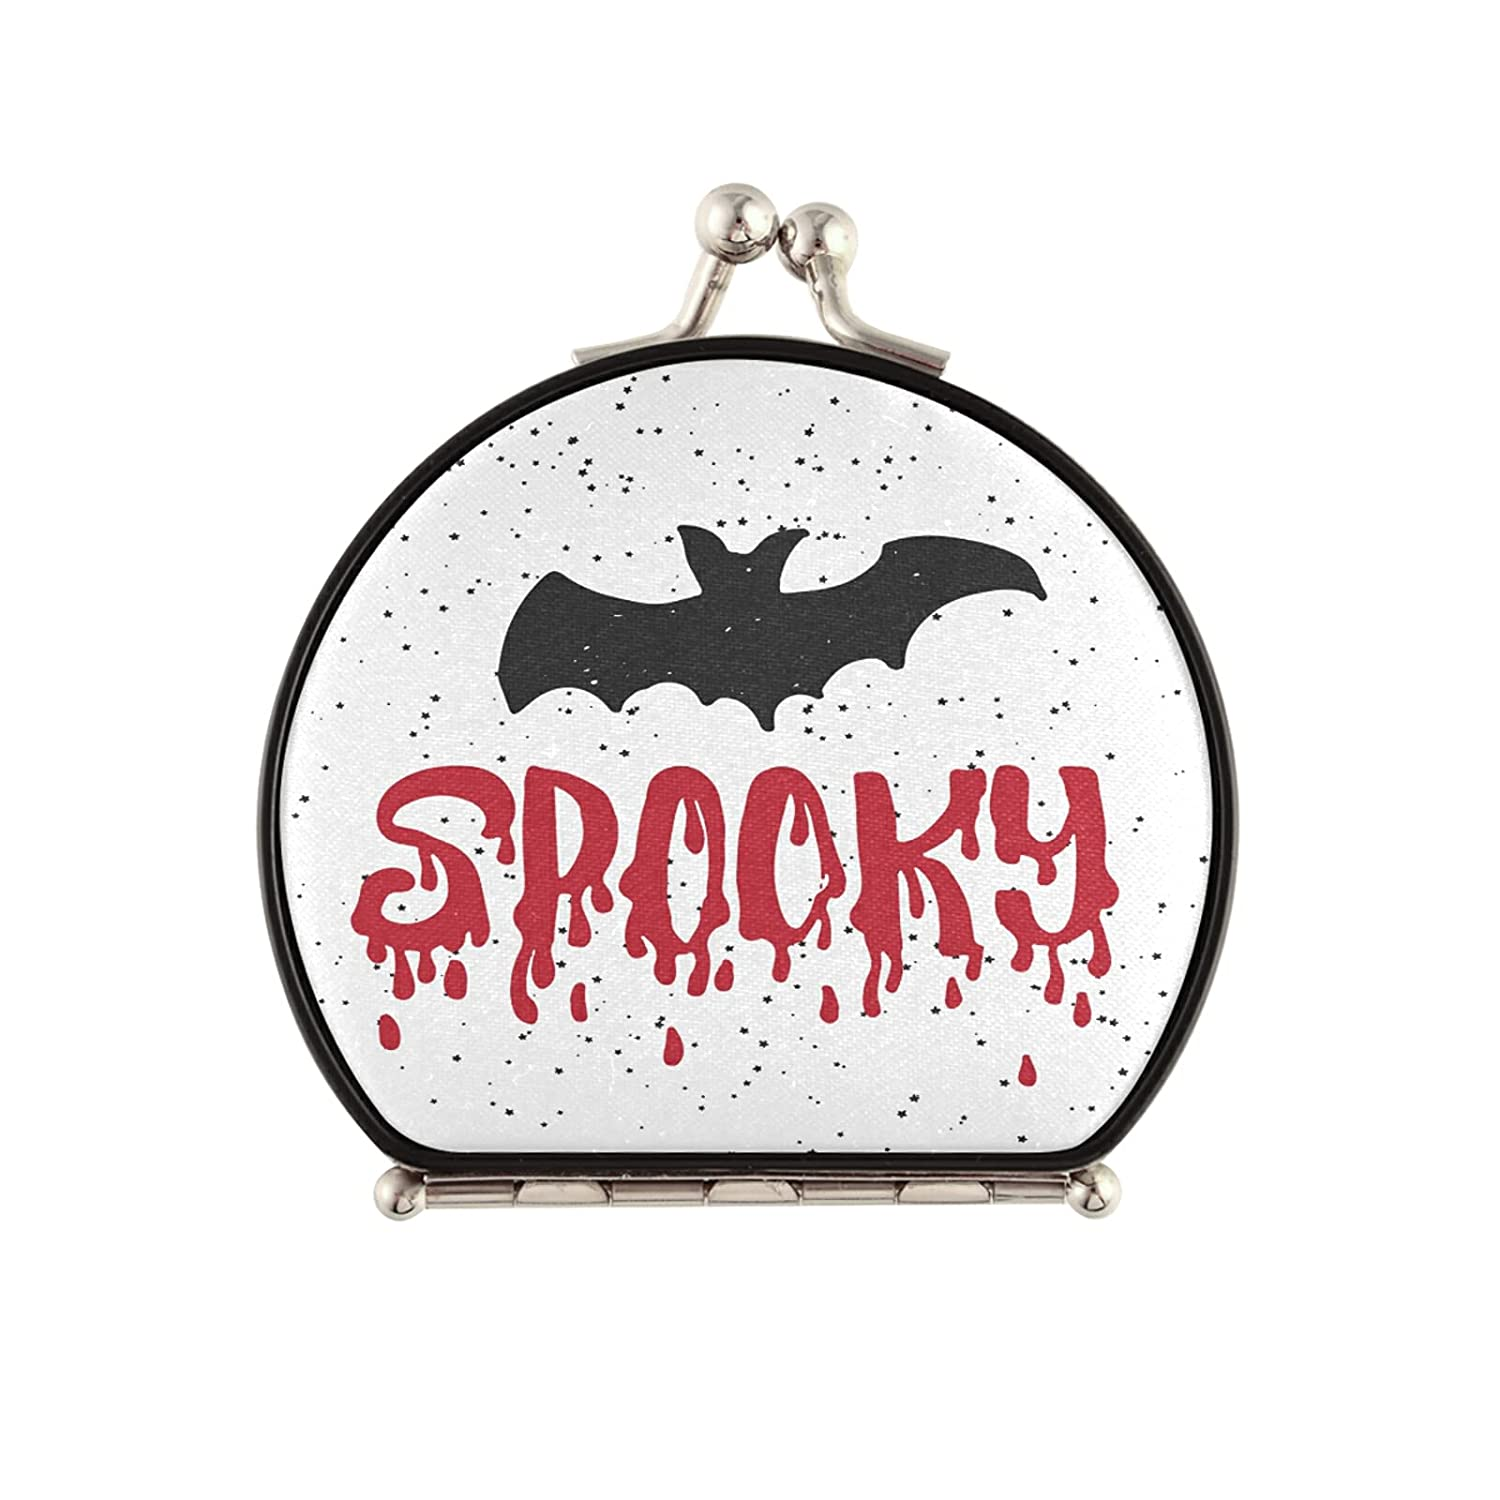 OcuteO Compact Round Makeup Mirror Opening large release sale famous Fu Bat Party Halloween Spooky